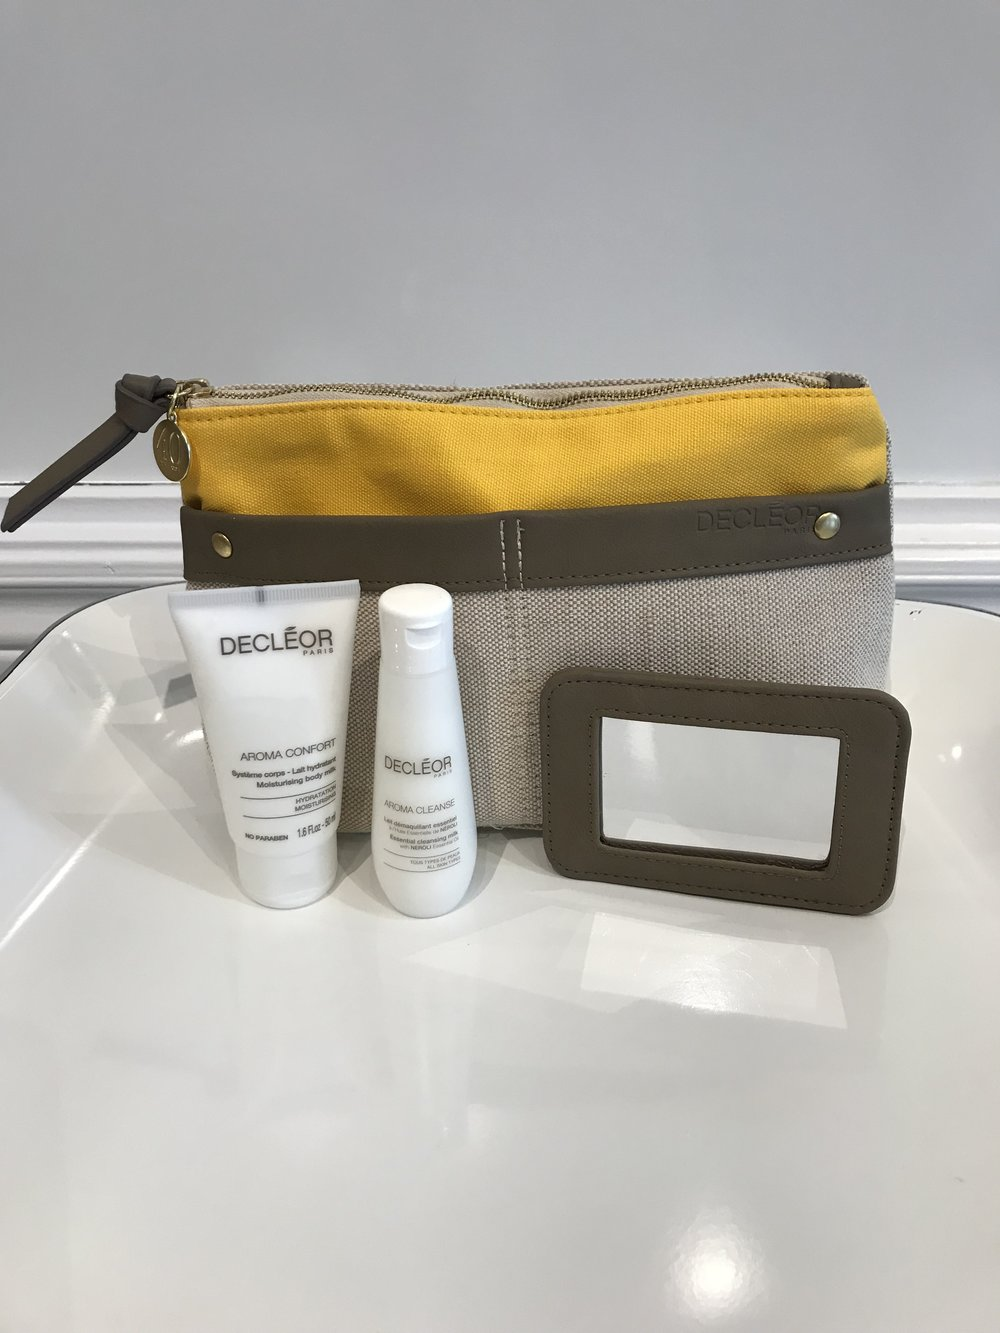 Spend $200 or more and receive this Decleor Travel Product Bag free! (Value $65)